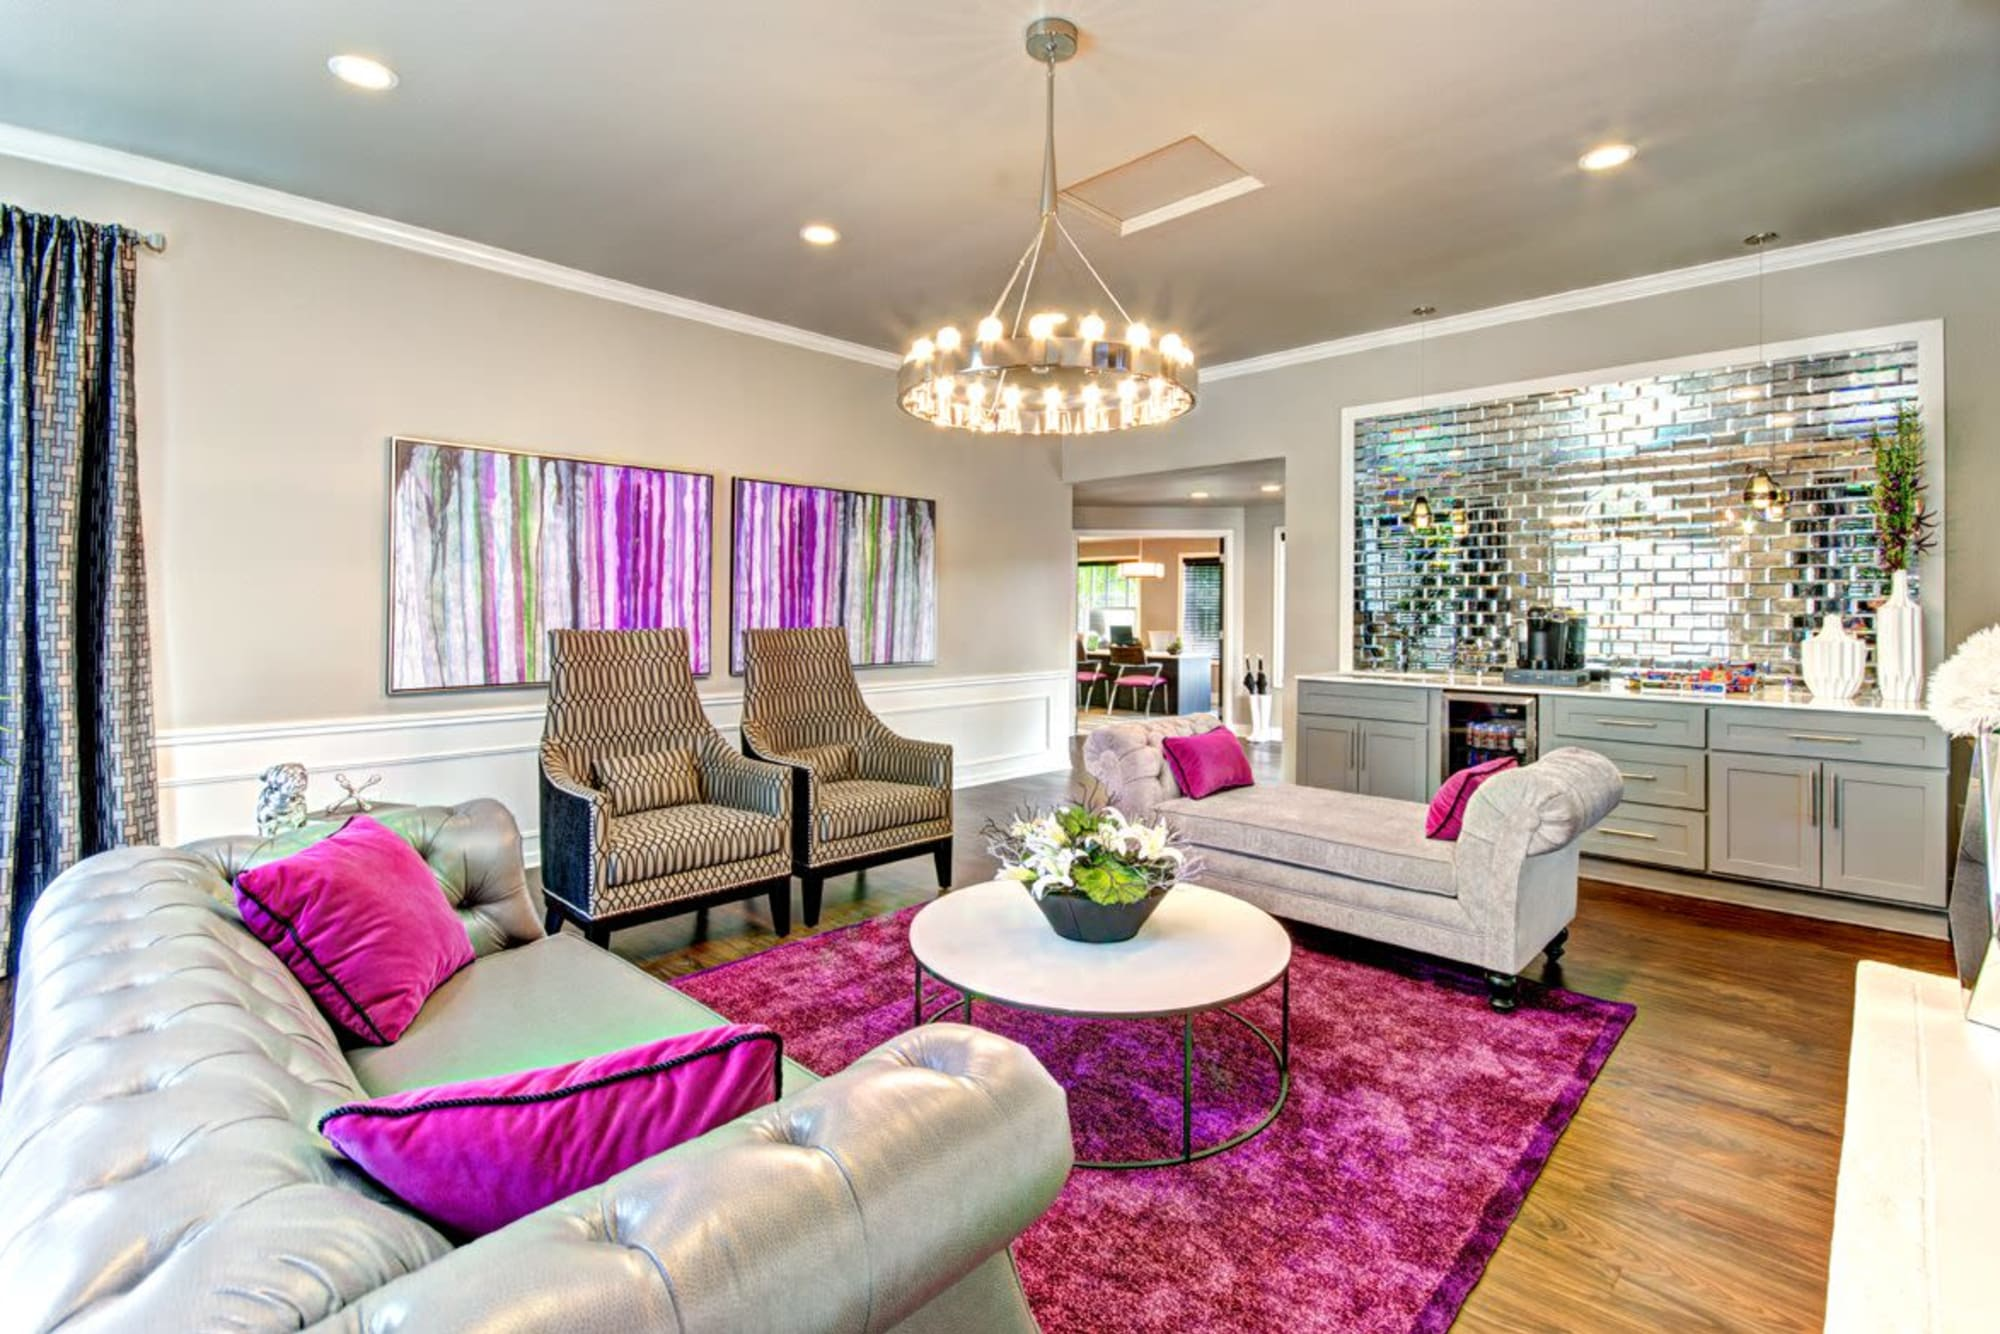 Bright pink décor in the community clubhouse at Wellington Apartment Homes in Silverdale, Washington